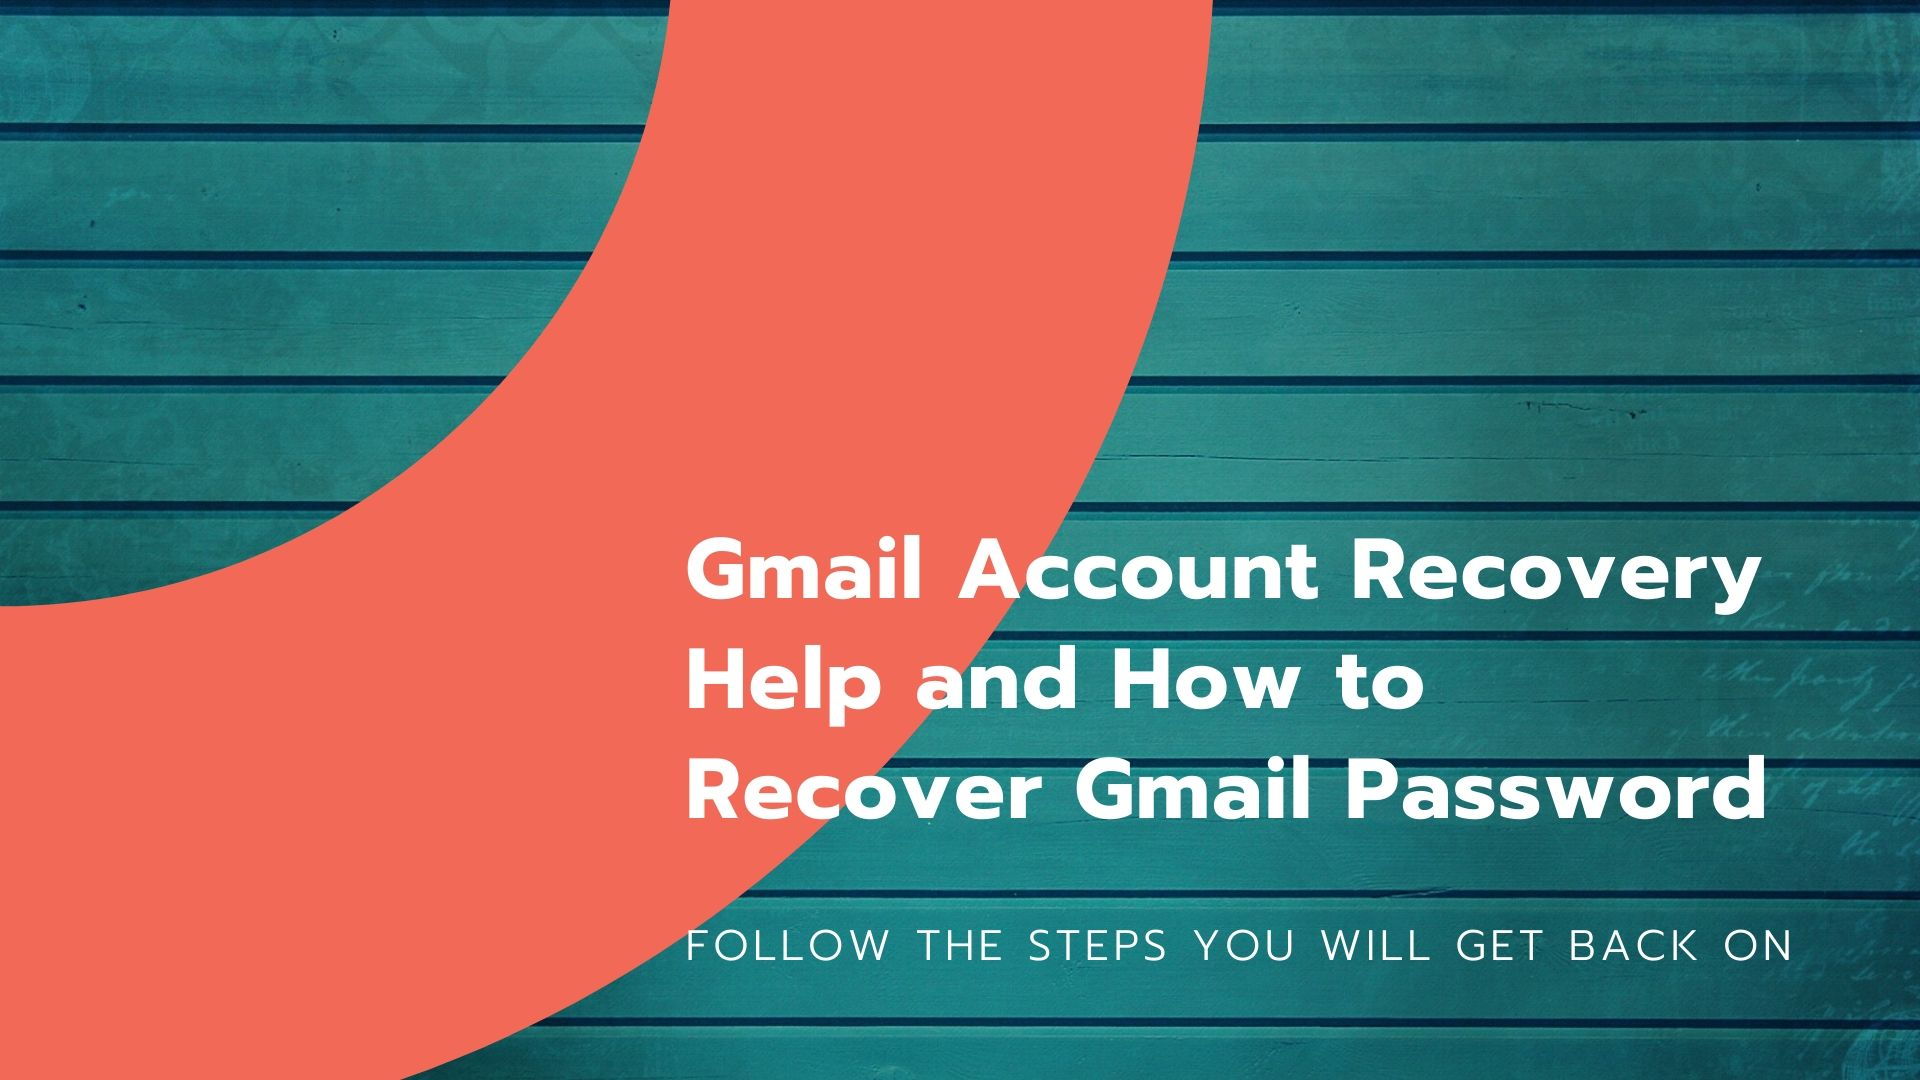 "Being a free service, millions of people registered on Gmail. Many people have more than one account. So, it is widespread in such cases to forget their passwords. Using the Gmail Recovery Form, it is effortless and hassles free to get back the access to your Gmail account if you do not remember your password. Gmail Recovery Form By following the simple steps below, you can quickly get back the access to your Gmail account again. Open the browser on your laptop, desktop or any other device, here, you should prefer the method from which you usually log in to your Gmail as Gmail can recognise the IP address of the previously used machines. That is the reason that Google asks users always to use a trusted laptop or desktop for this purpose. Go to the option saying ""Gmail Recovery Form"". Sign in to that using the details of your existing Gmail account that you remember. Fill in your email address and click to the next Option. You will be directed to a new page with a link for the Gmail recovery form. Go to the next link, and then to the option of Forgot password. From that, enter the last password that you remember. If you cannot recall the last one too, try any latest password that you can remember and fill that in. Gmail will be asking you to enter the previous password that you remember. You are supposed to put the latest password that you remember or whichever your old password, you know. This step is used to make sure of the ownership of the account. Gmail will also ask some simple recovery questions to make sure that the account belongs to you. Some of the questions frequently asked in this case are listed below. About Gmail Recovery Form ● The previous password: If you have changed your Gmail password recently and only remember the older one, you can submit that one. ● Verification using a code: You will receive a verification code on your registered recovery email id and your phone number. Your mobile number is saved in Gmail for instances like this if you forget your password. You will get an SMS text message from Google with the verification code. ● The recovery email address for Gmail account recovery: For recovery of the Gmail account. You will also receive a verification link on your recovery email id. Go to the link in a message from Google with the subject ""Gmail account Recovery"" that is sent to your recovery email address to reset the password to the Gmail Account. ● Security questions for Gmail password recovery: Users are asked some recovery questions at the time of creating the Gmail account. When you forget your password, in the process of recovering the password, you will have to answer those security questions too correctly. Fill down the answer to your recovery question. After selecting the subject in the category of ""Answer the security question you added to your account"", give the correct answer, and your ownership would be verified. ● When was the account created? Google does not expect you to remember the exact date and time when you were registered. You have to recall the month and the year when the account was created. After that, your verification will be complete, and you will be able to recover your account. Gmail Recovery Form Passwords Gmail asks you the last password that you can recall, try to enter the most recent password that you can remember. In case you do not remember the last password you had for your Gmail, you can try some other alternative ways too. Try to use any new or previous passwords that you do remember. Even if you cannot remember any previous passwords, make a guess and give it a shot, it may work! Answers to security questions The easiest way to recover your password is by using the recovery questions. Even if you do not remember about the security questions you used while creating the account, make a guess and try to do it. You will be easily able to reset your forgotten Gmail password from any of the options given to you. You can also call Google Account Recovery Phone Number to reset or recover your password."